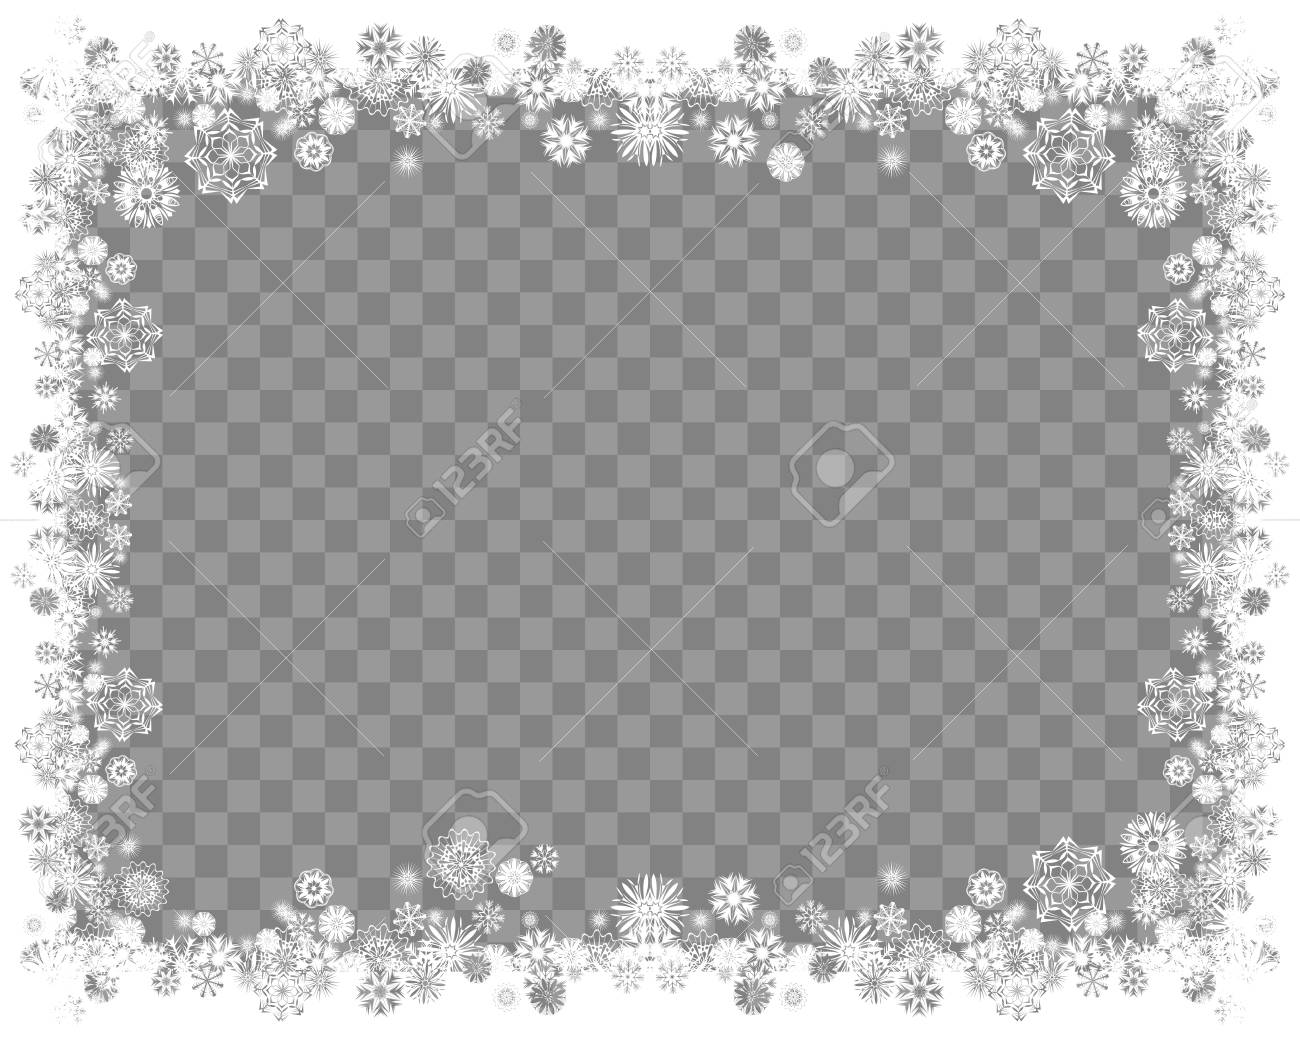 Snow frame on a transparent background. Abstract winter background for your Merry Christmas and Happy New Year frame design. Vector illustration - 90865380